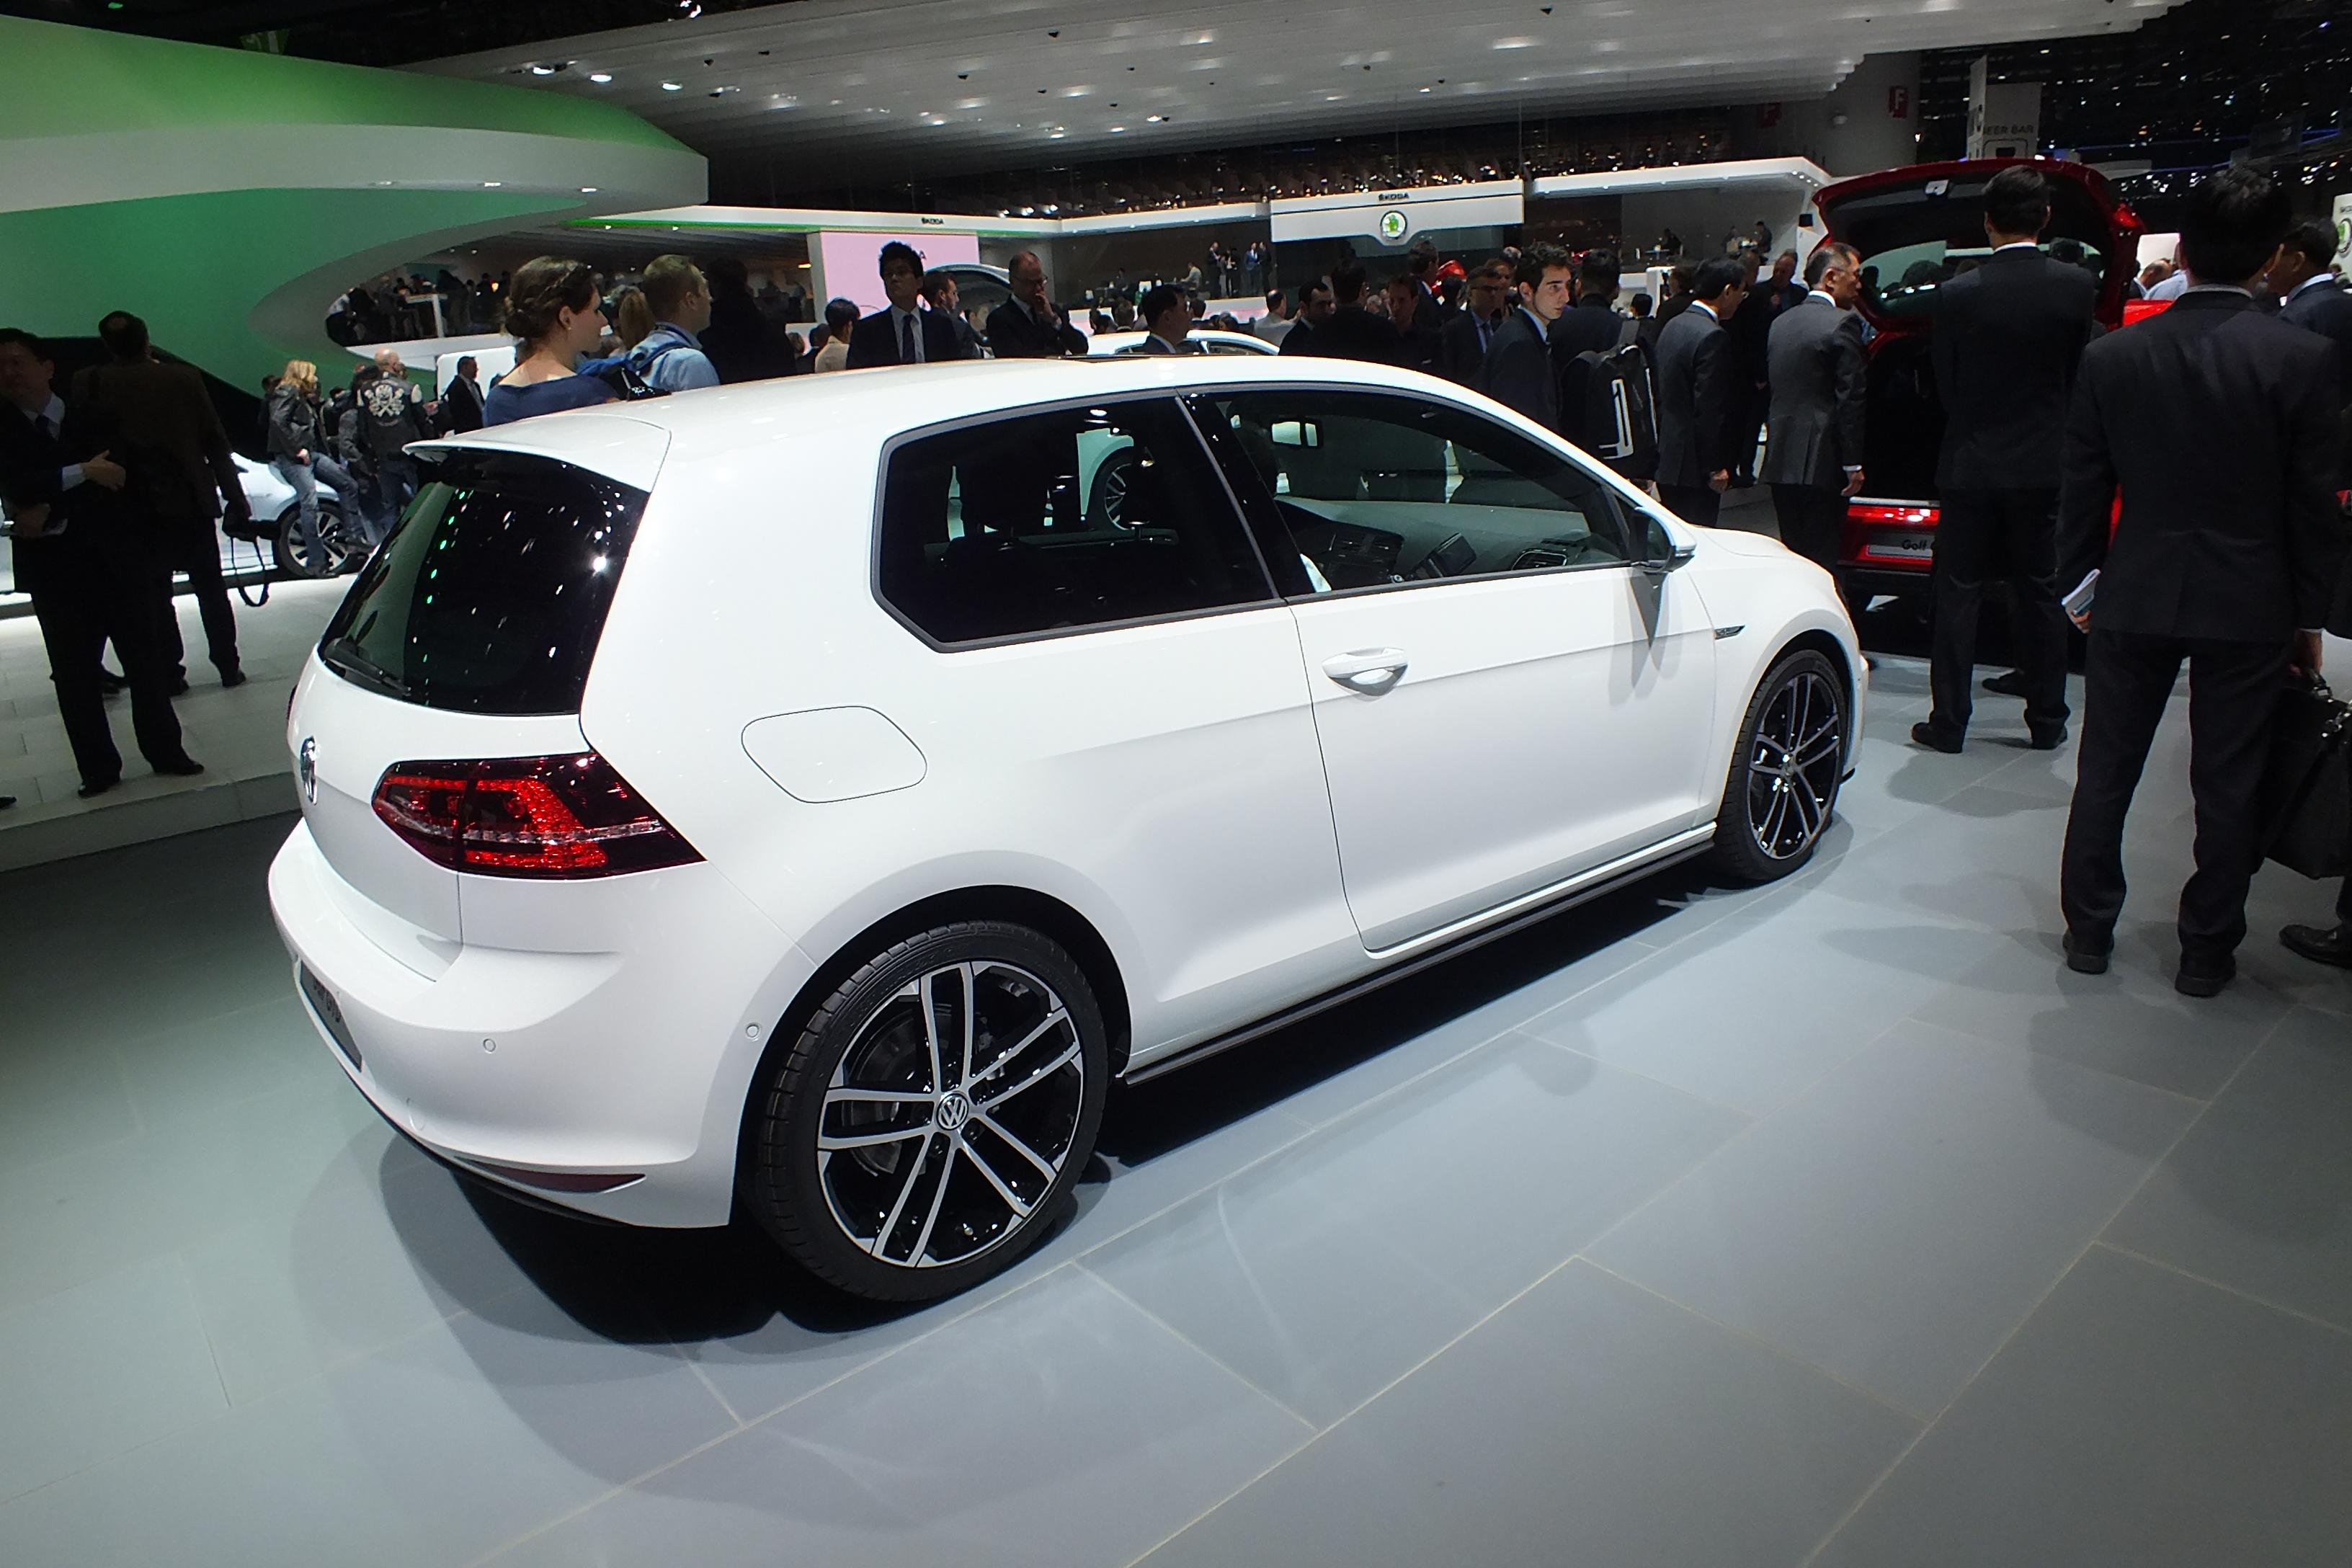 en direct de gen ve 2013 la volkswagen golf 7 gtd l 39 alter ego de la gti. Black Bedroom Furniture Sets. Home Design Ideas